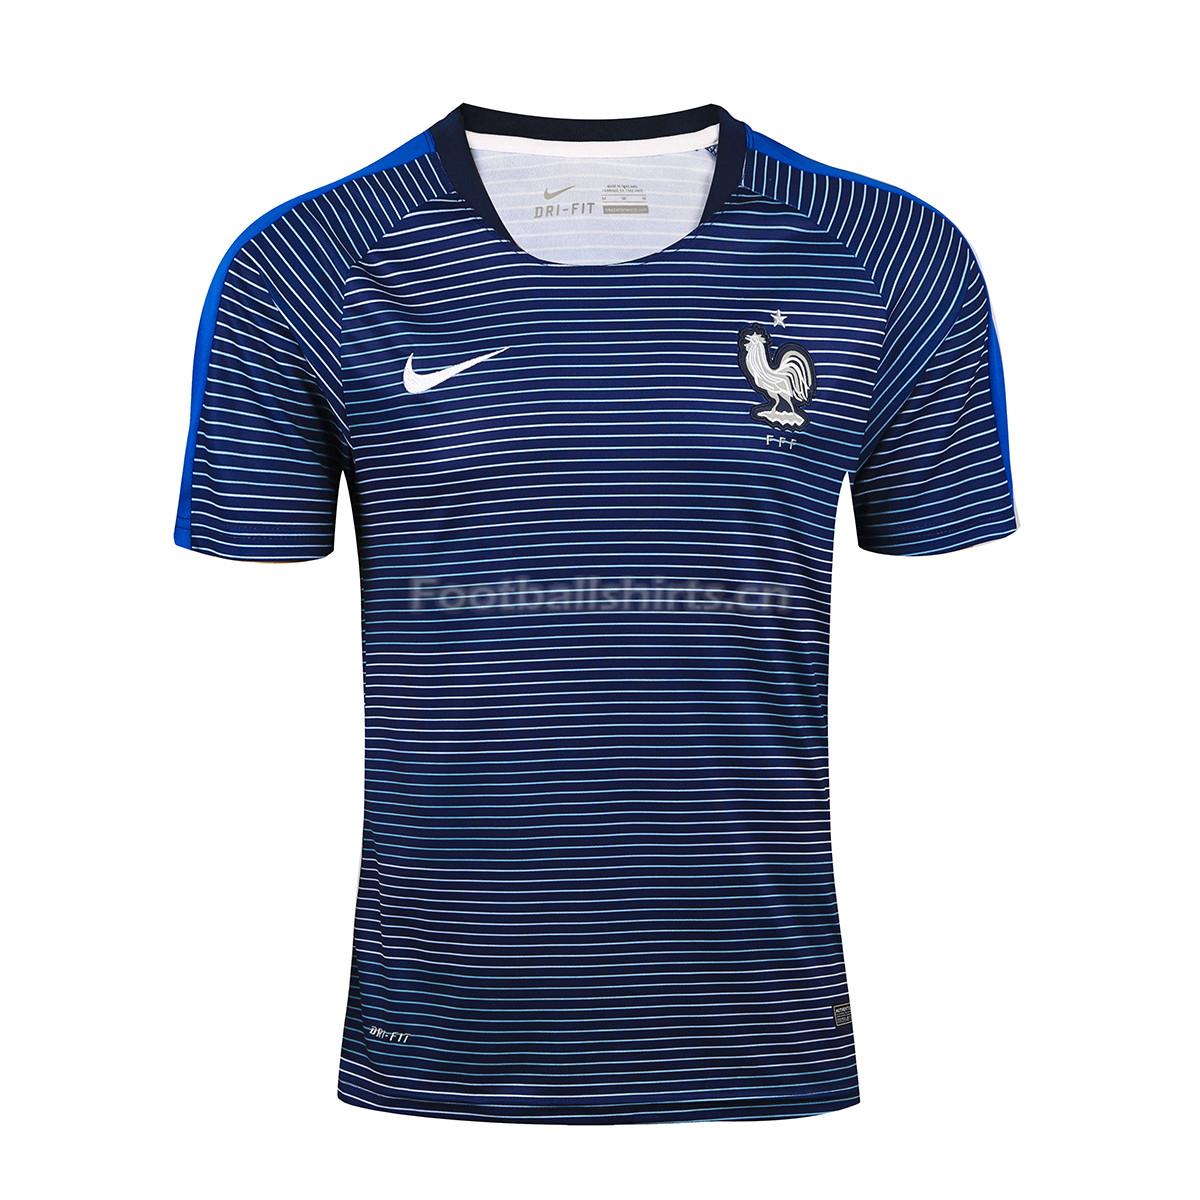 France 2018 World Cup Blue Training Shirt